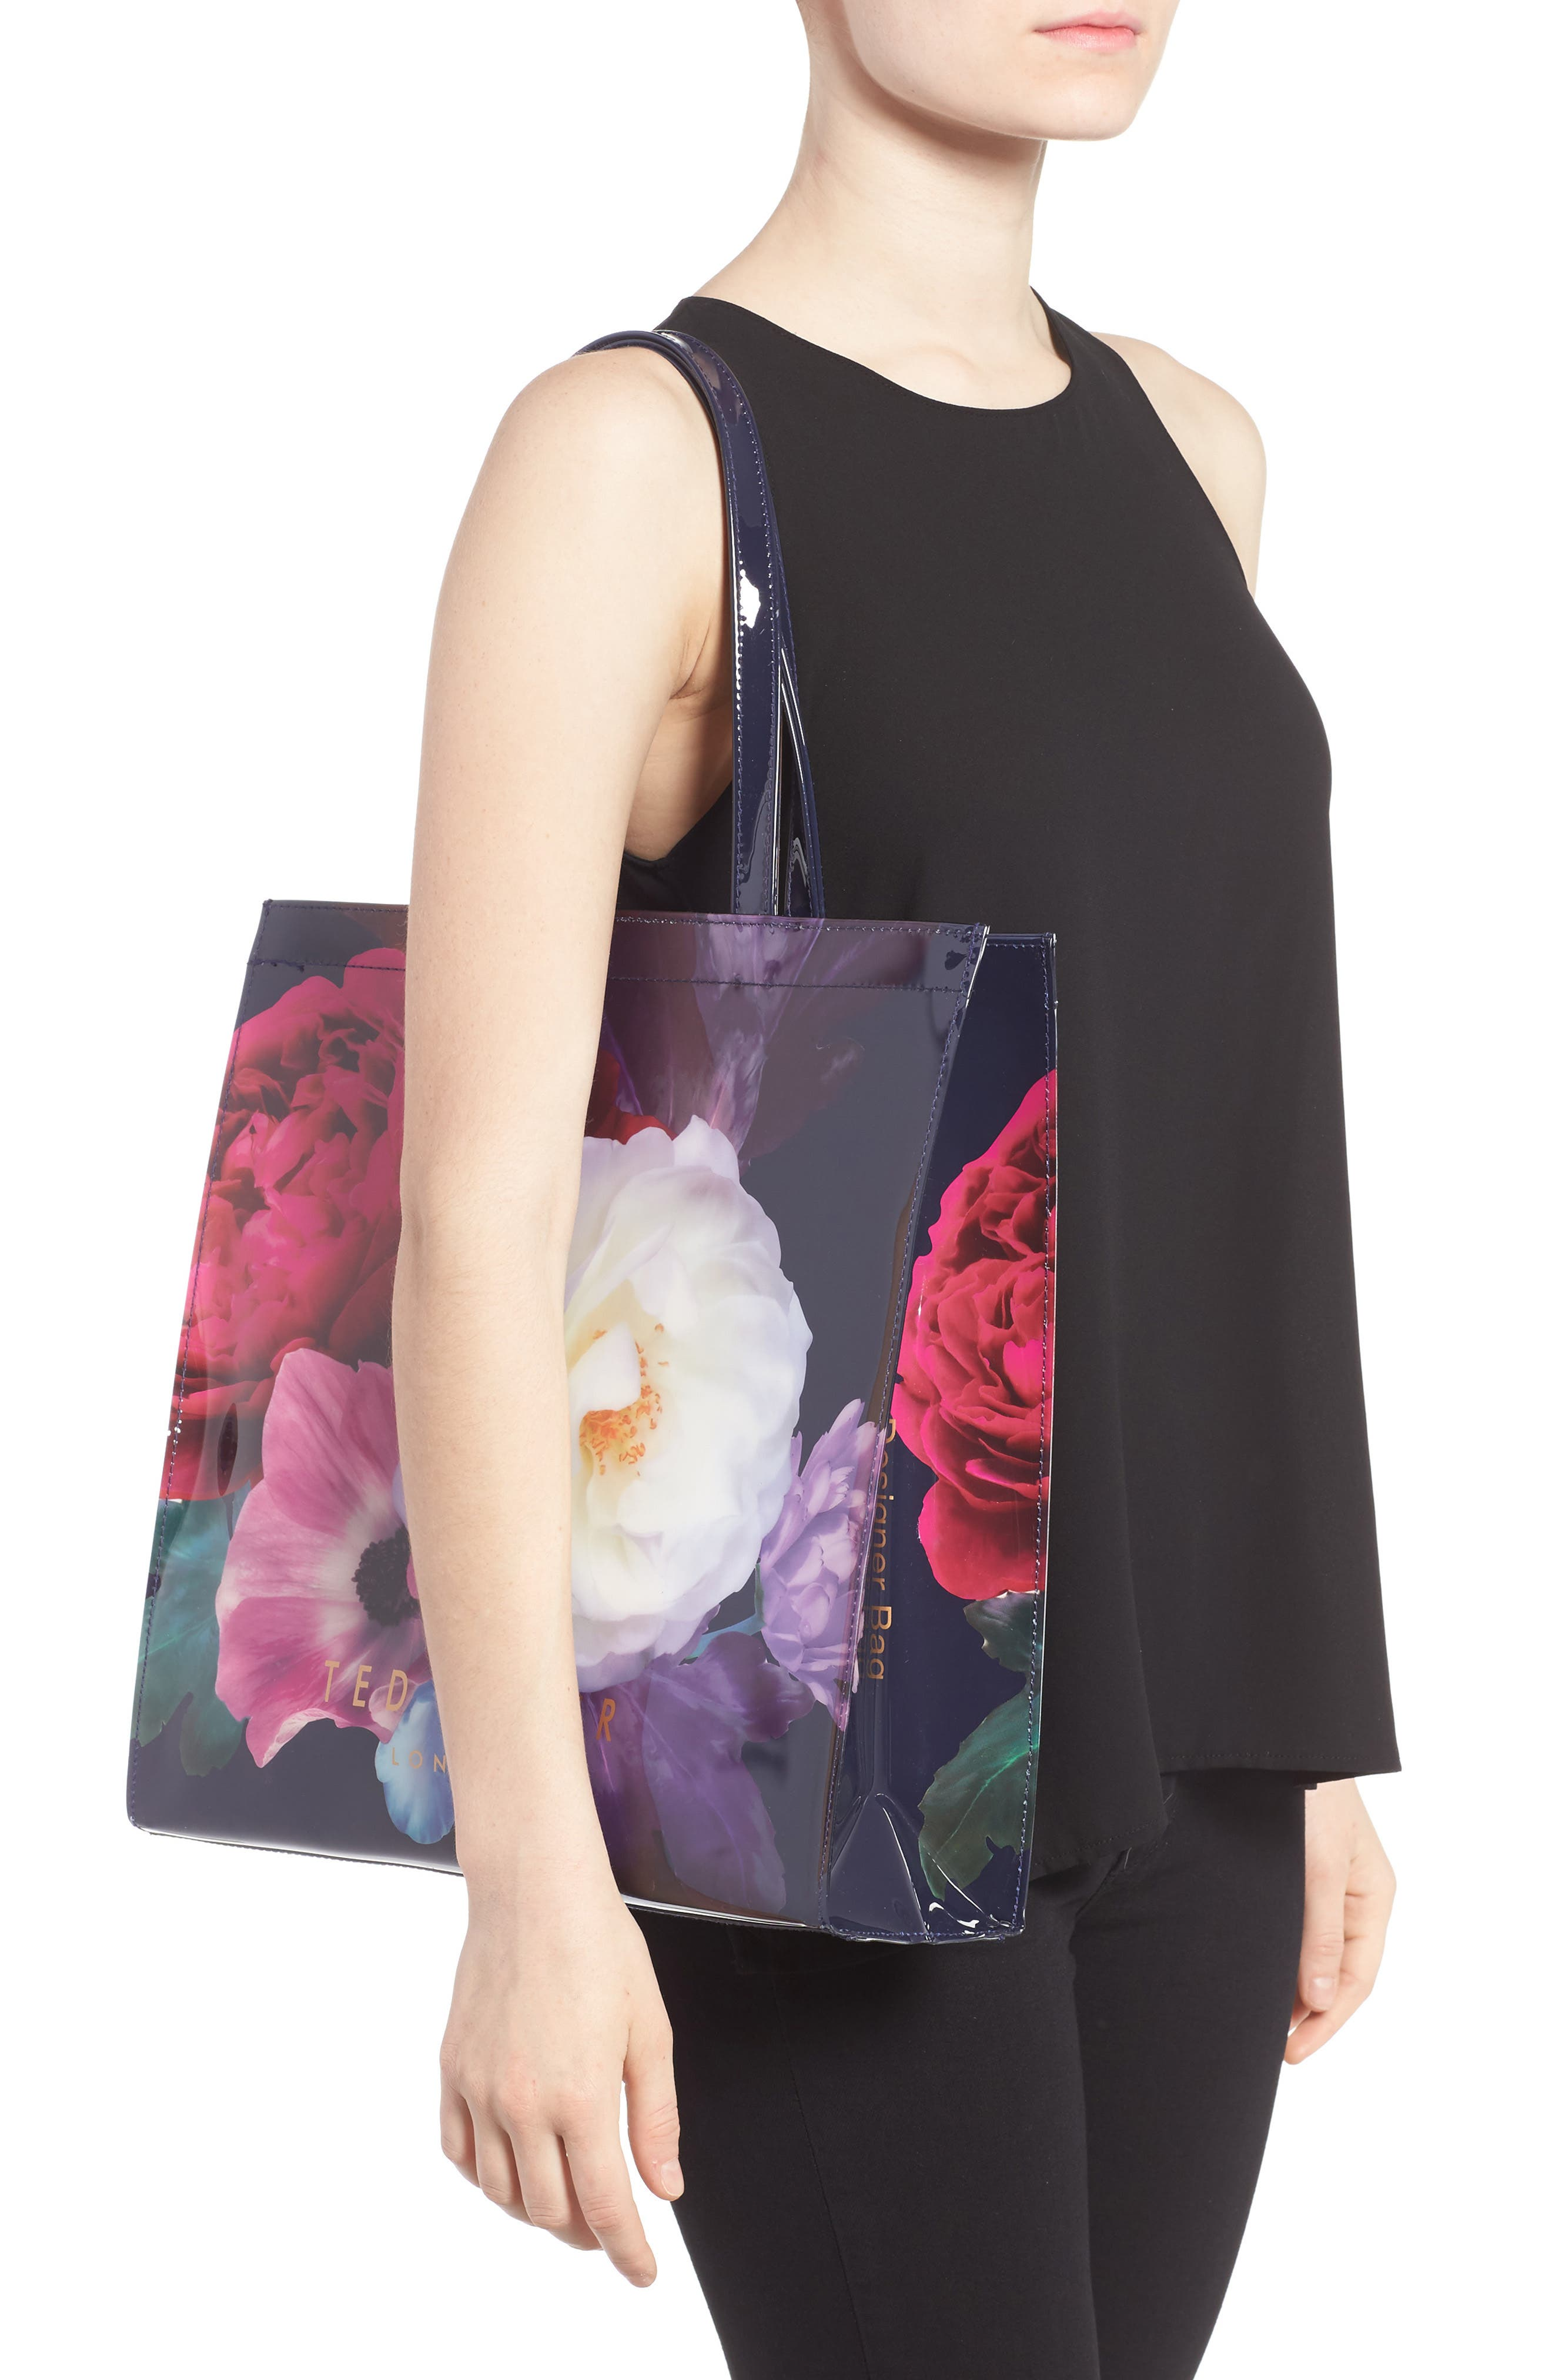 TED BAKER LONDON,                             Blushing Bouquet Large Icon Tote,                             Alternate thumbnail 2, color,                             410